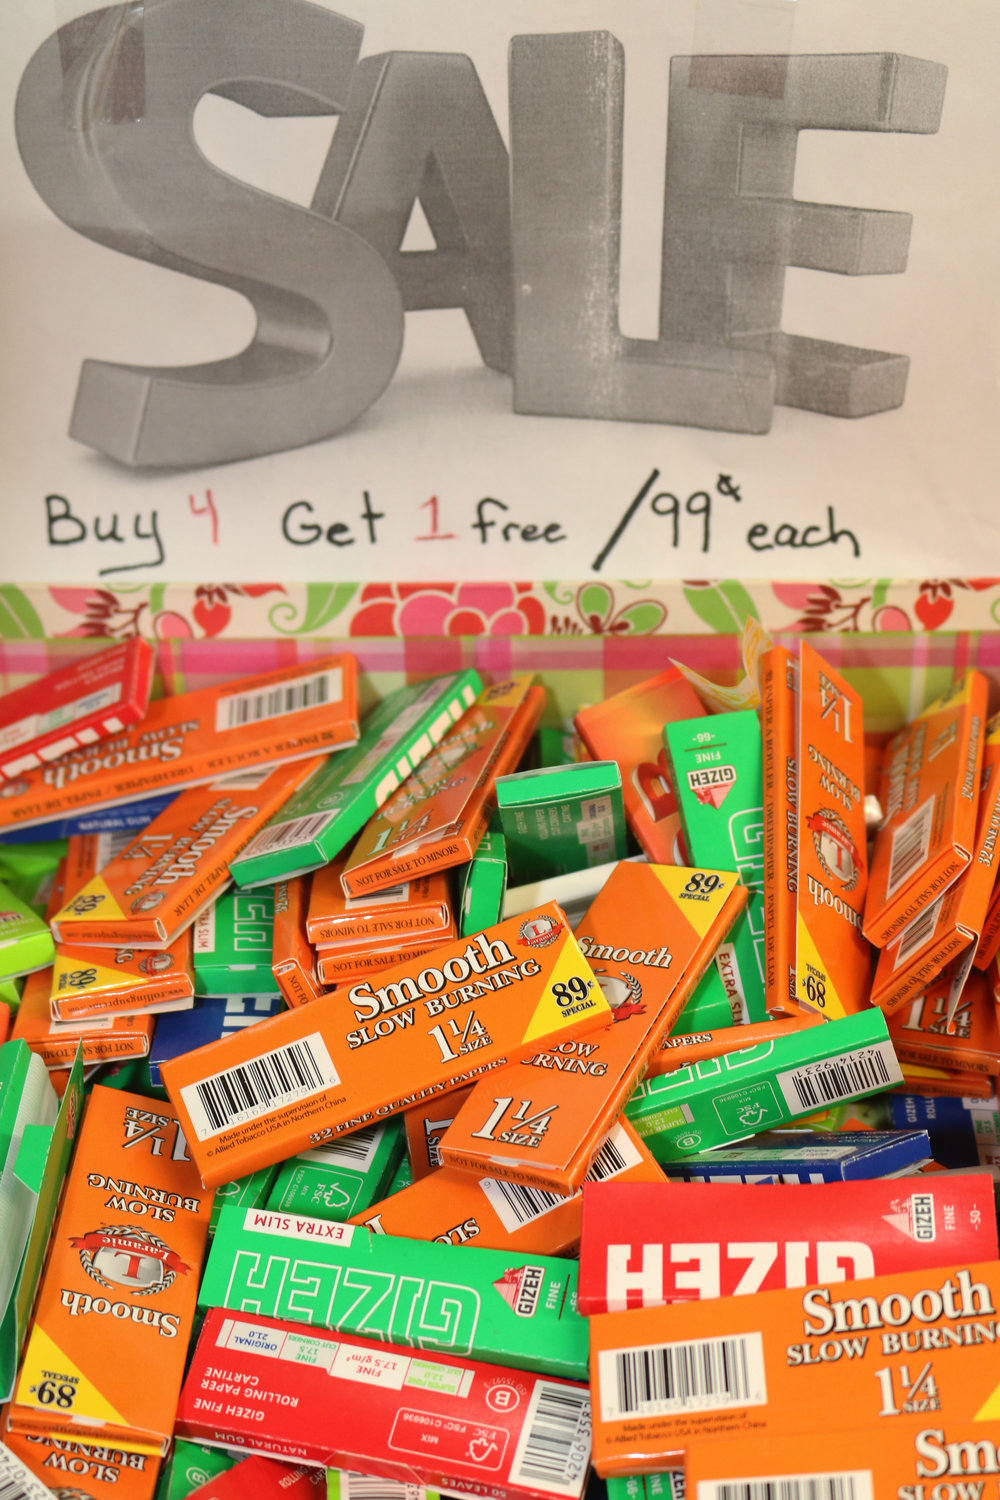 Paper From 99 cents; buy 4 get 1 free